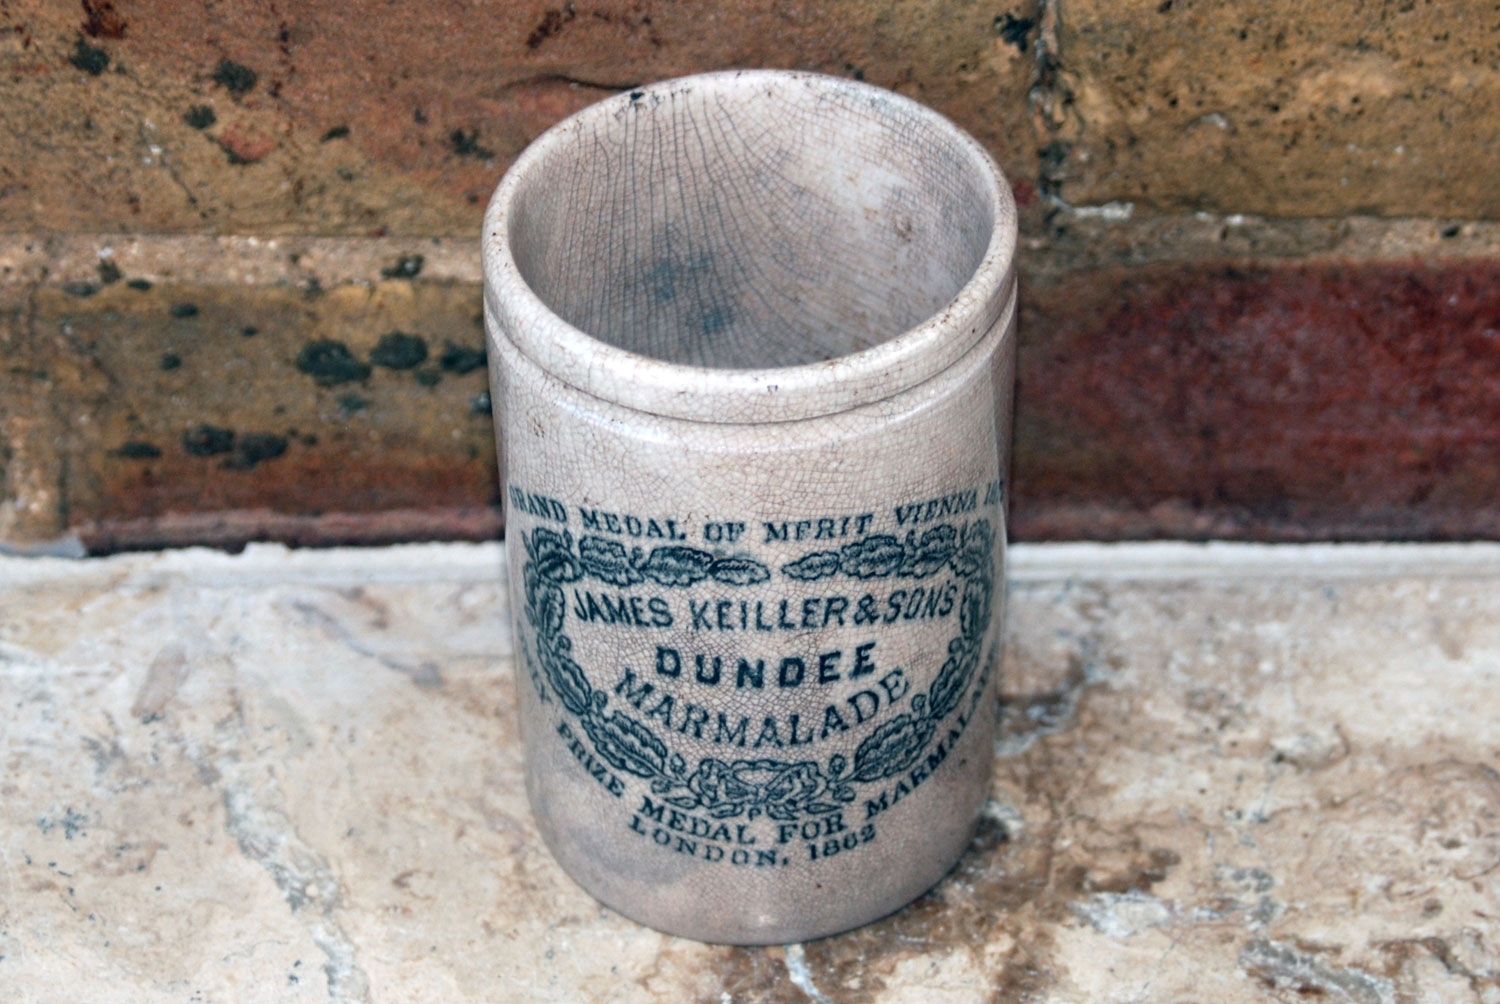 Antique victorian edwardian white ironstone james keiller 1lb dundee marmalade pot weathered chippy shabby chic grey